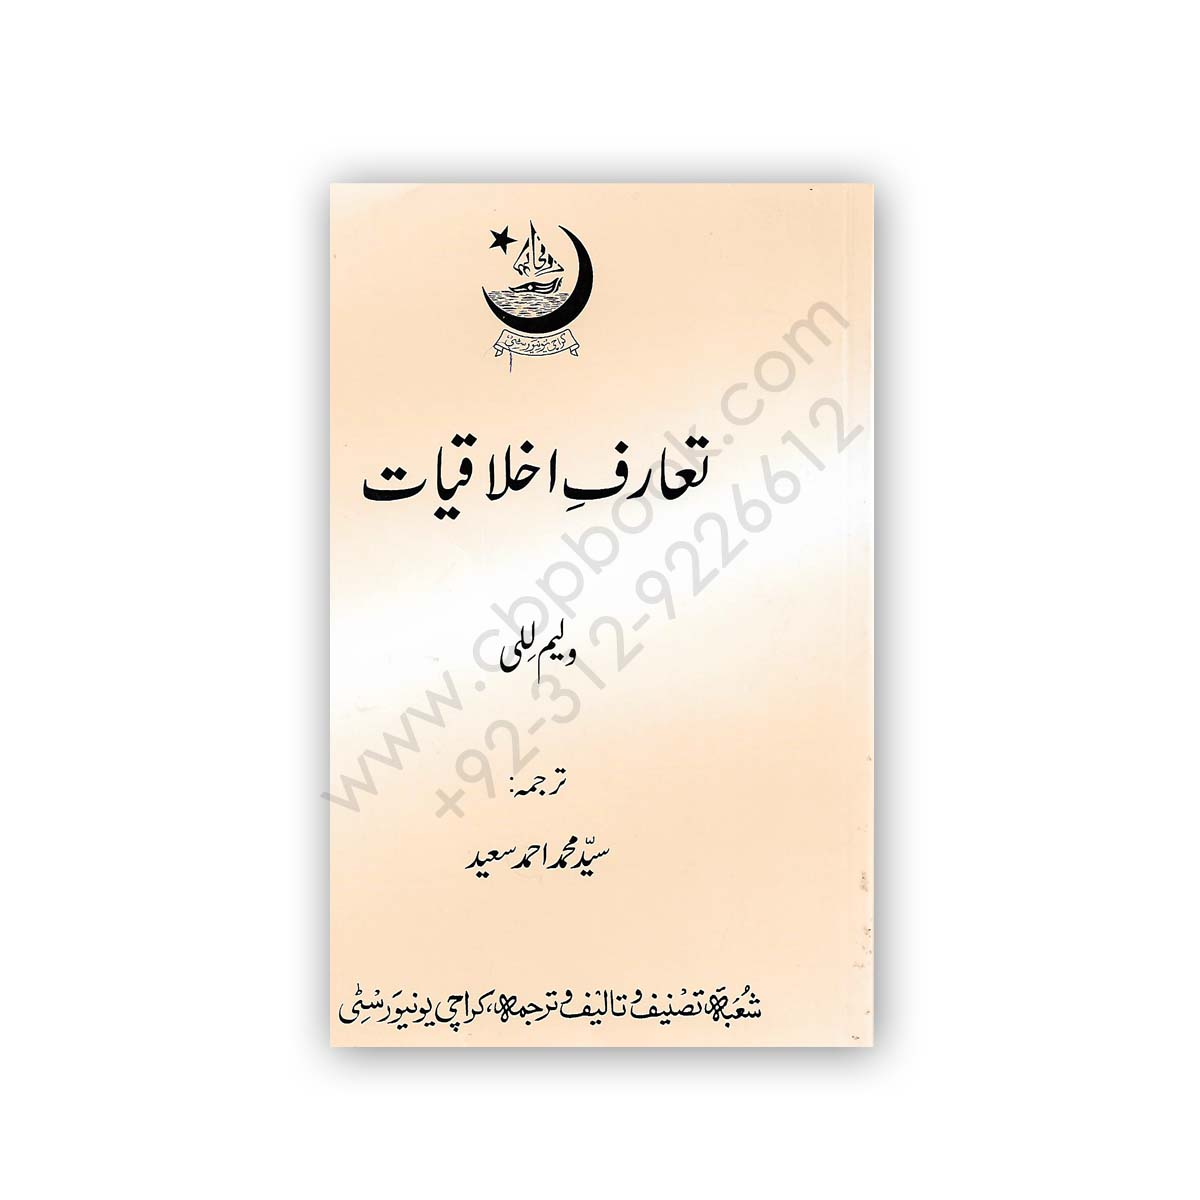 introduction to ethics by william lillie (urdu) by syed m ahmad saeed